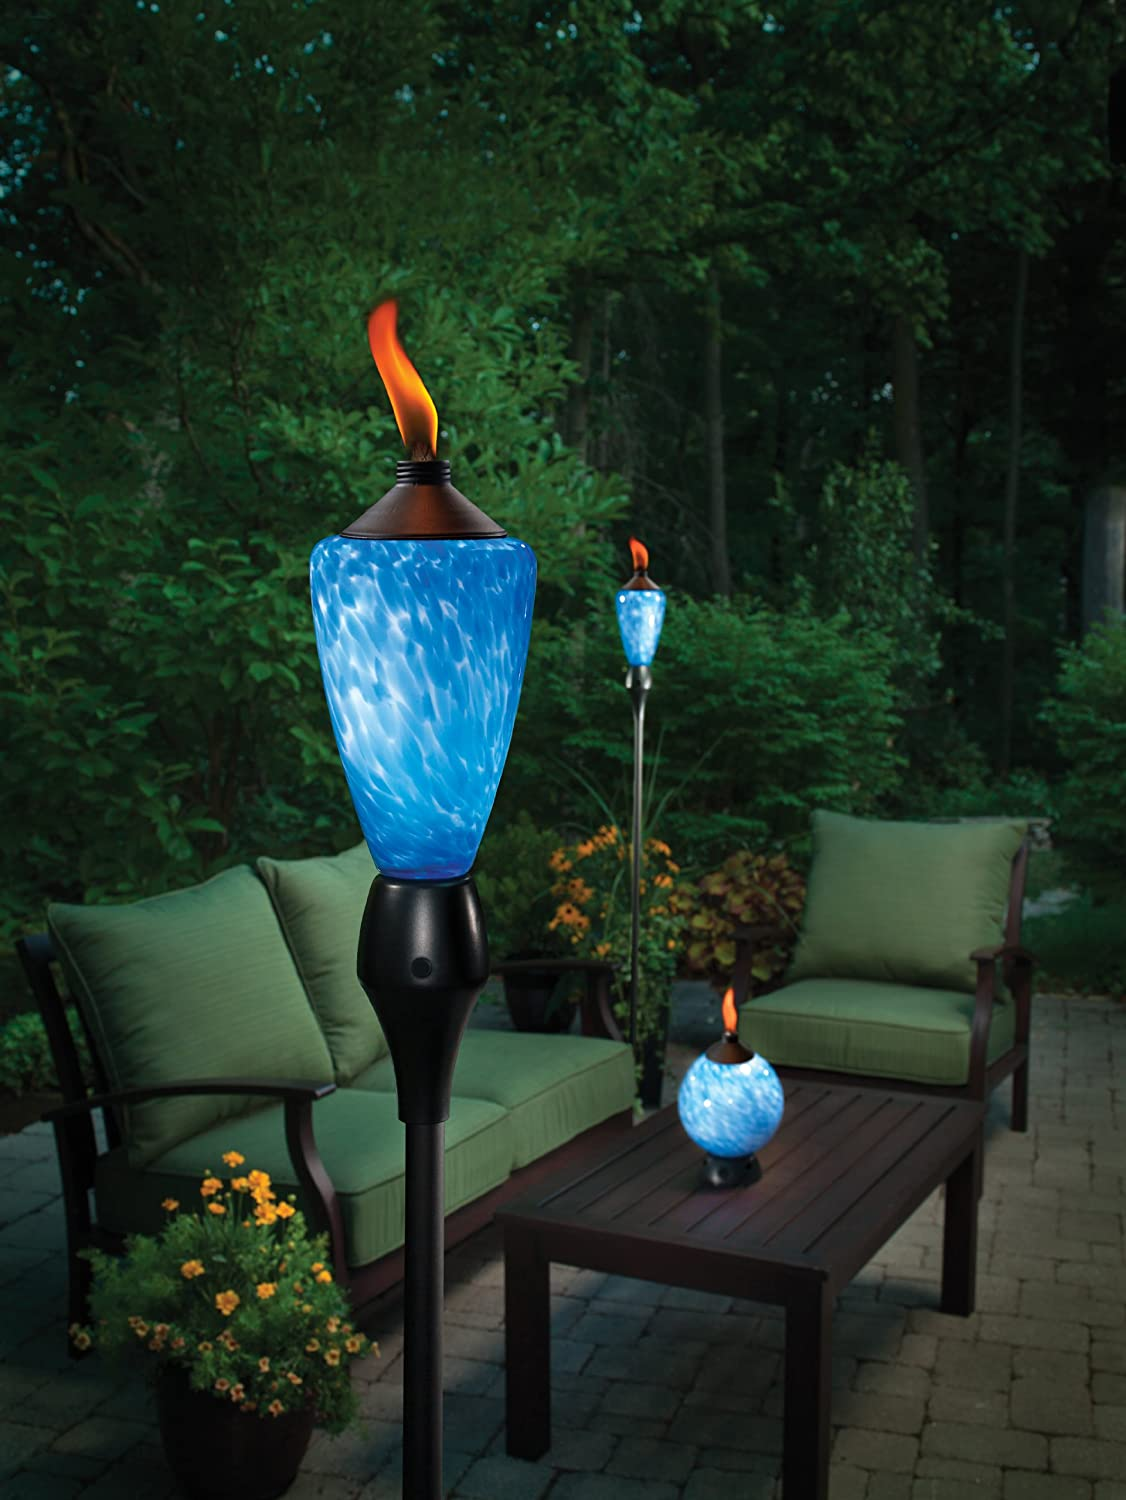 change glowing led patio yard deck flame citronella tiki torch ebay